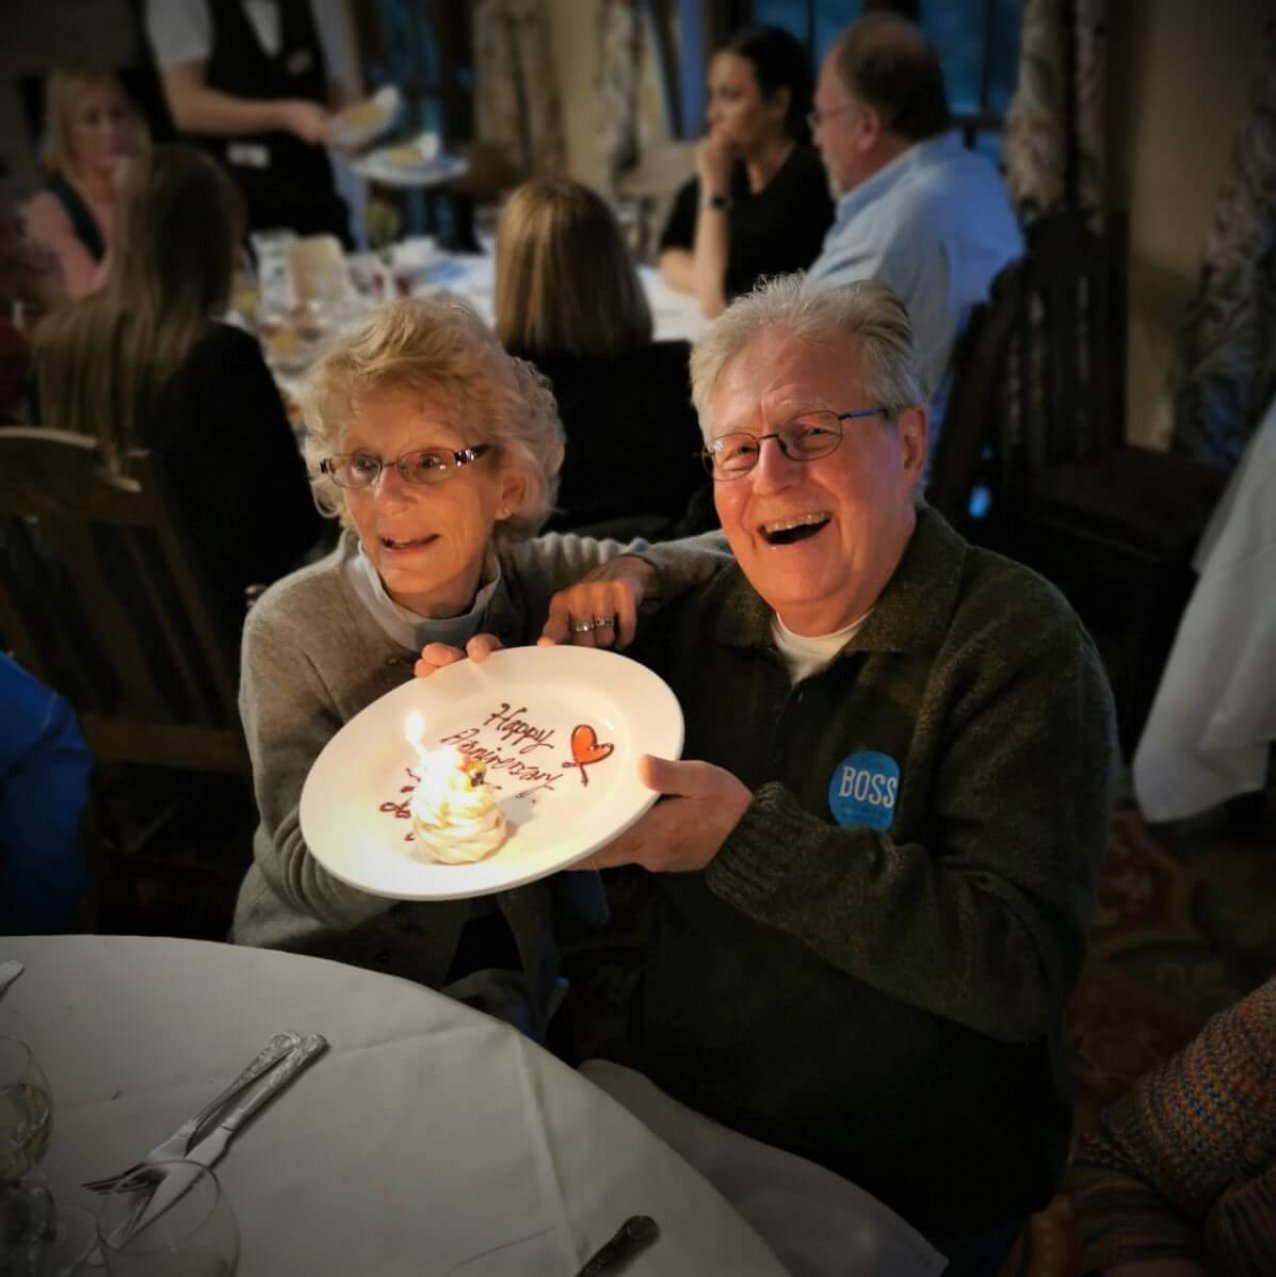 A smiling couple celebrate their 50th anniversary with a cake in Ireland